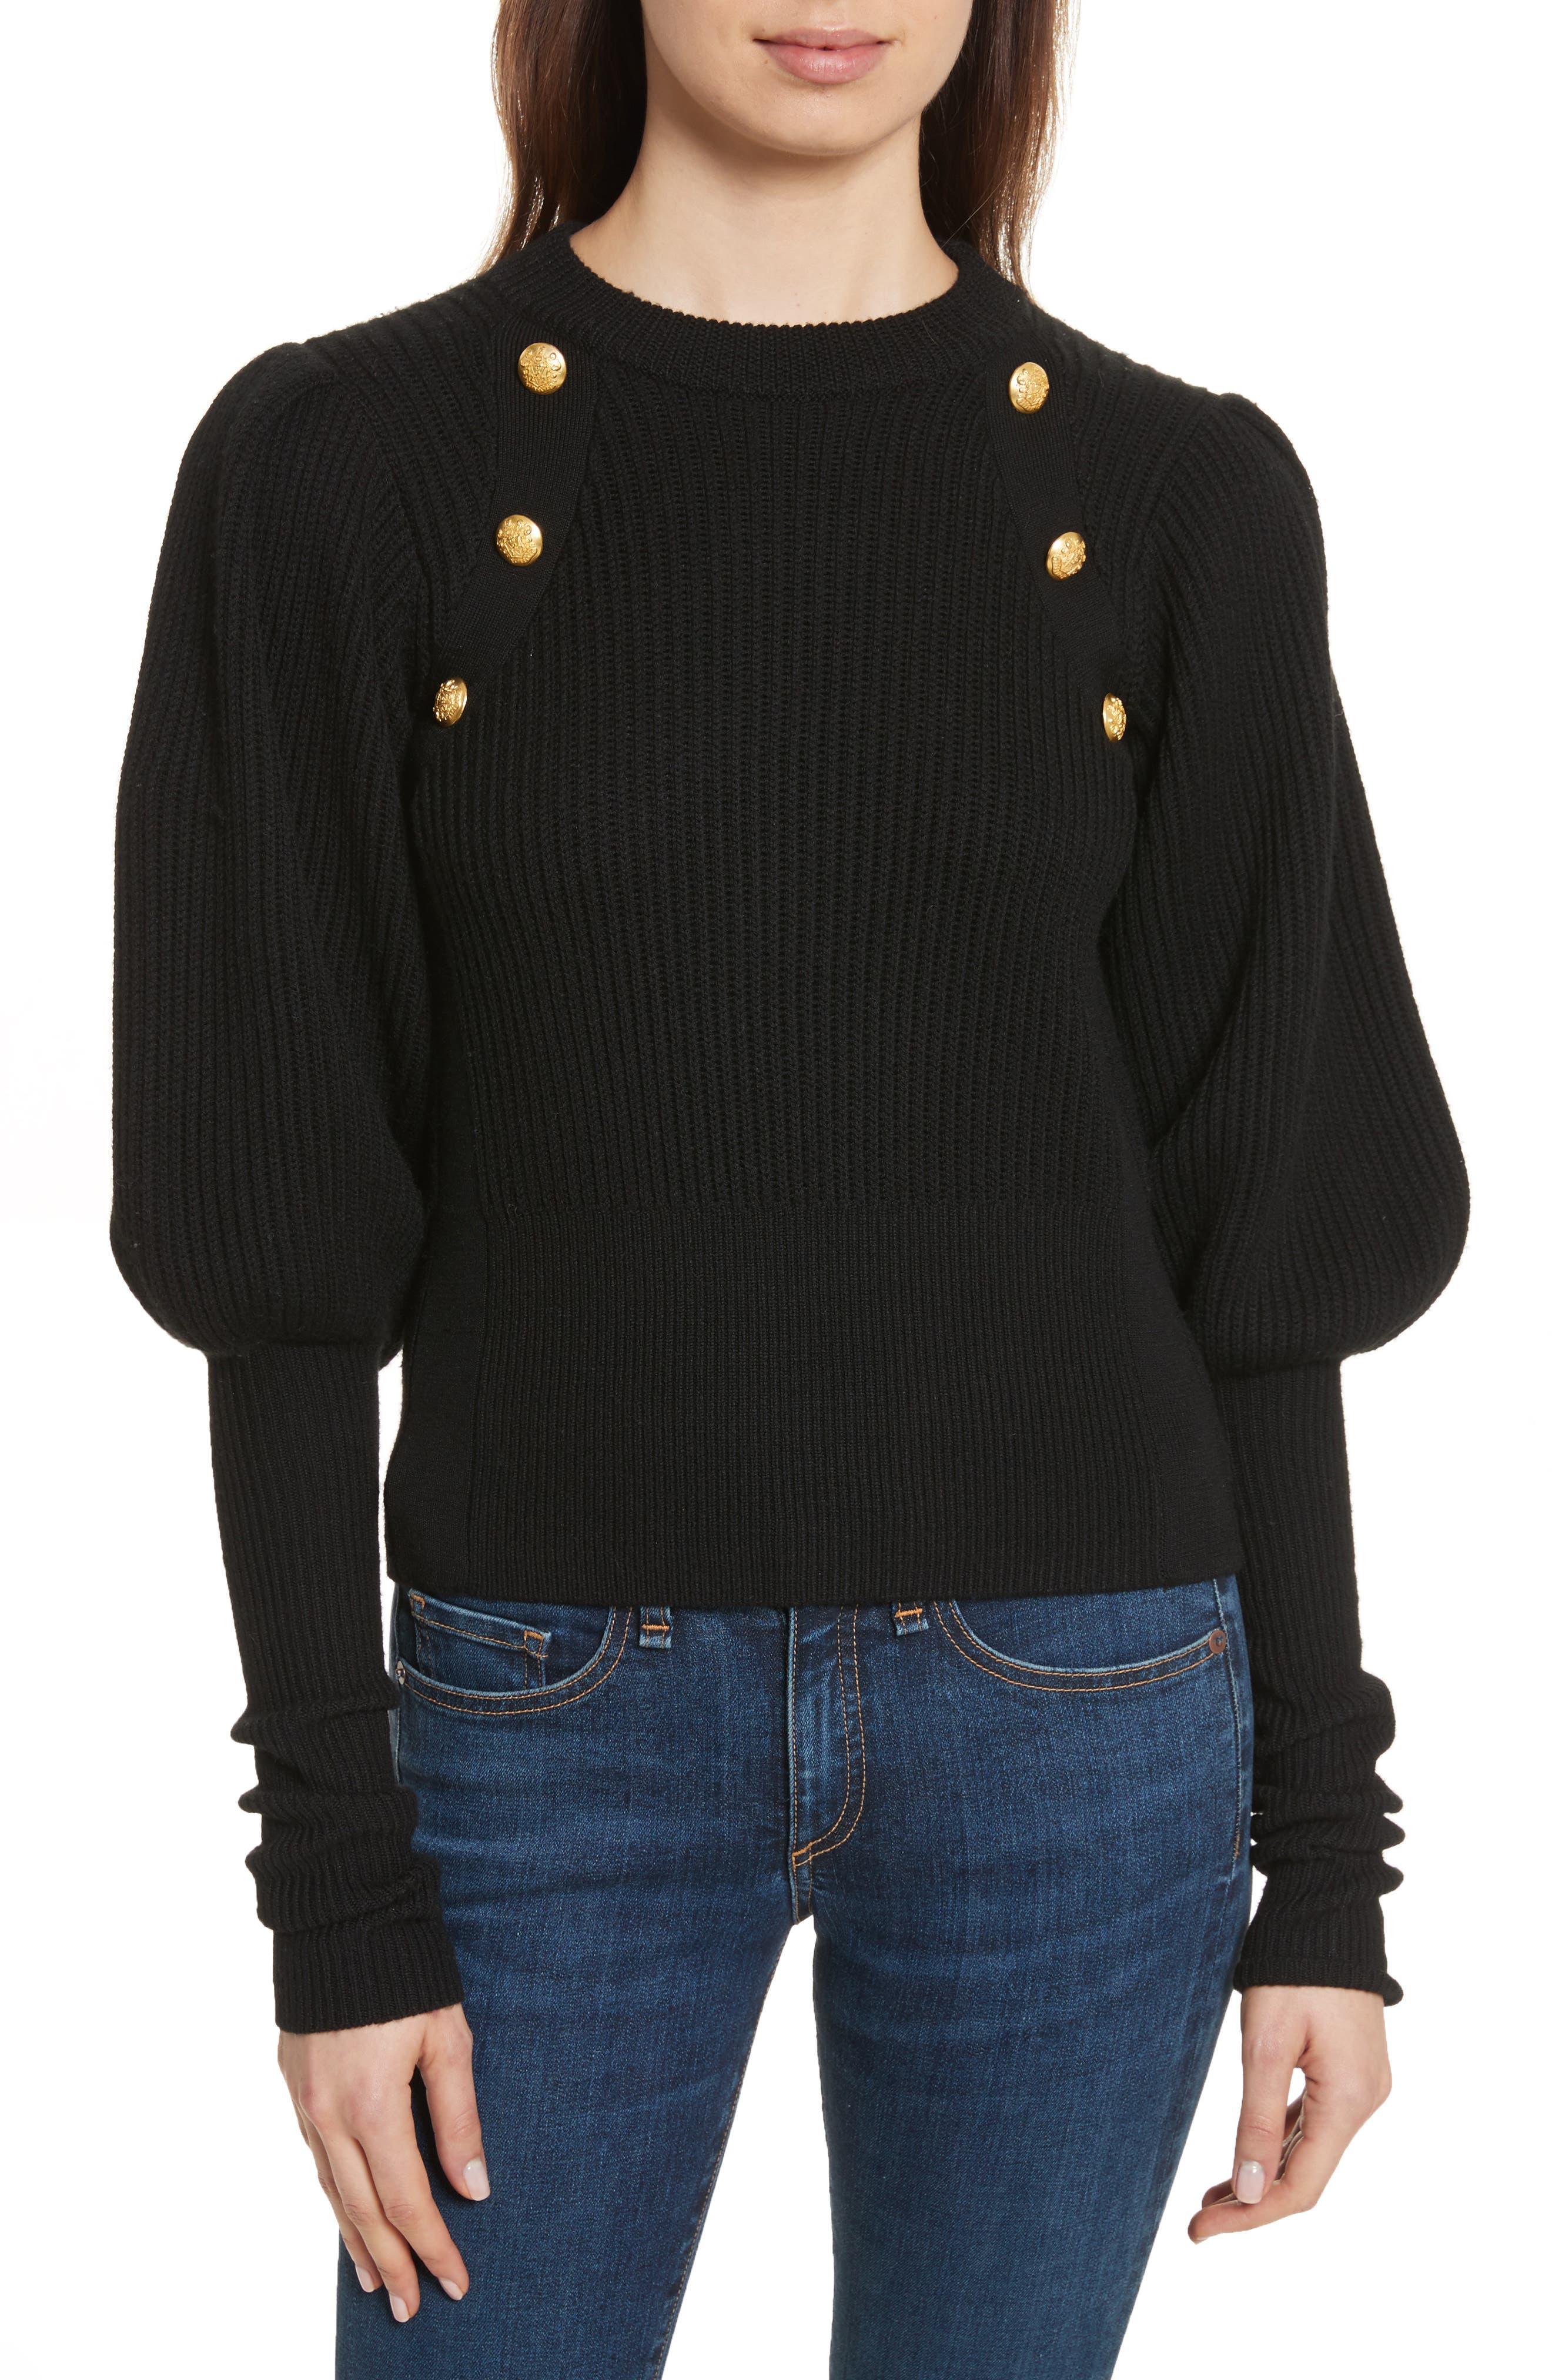 Jude Leg of Mutton Sleeve Sweater,                             Main thumbnail 1, color,                             001